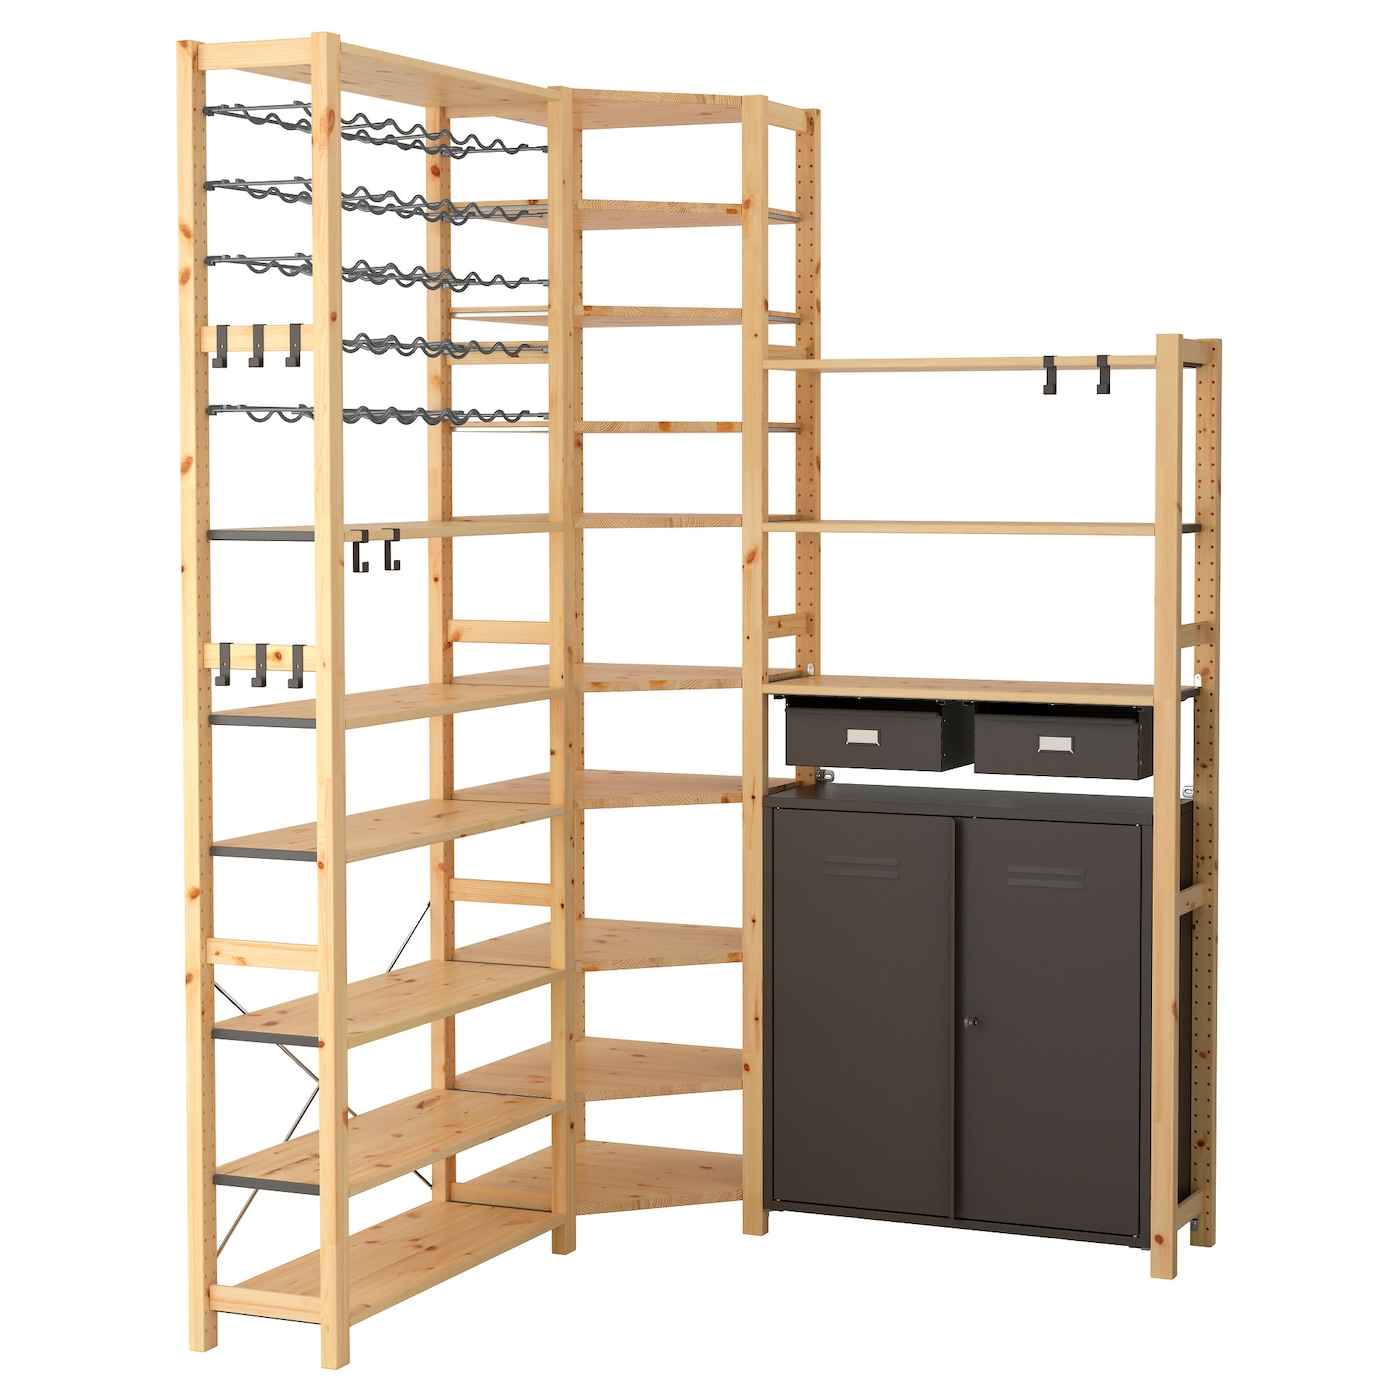 IKEA IVAR 3 sections/shelves/cabinet You can move shelves and adapt spacing to suit your needs.